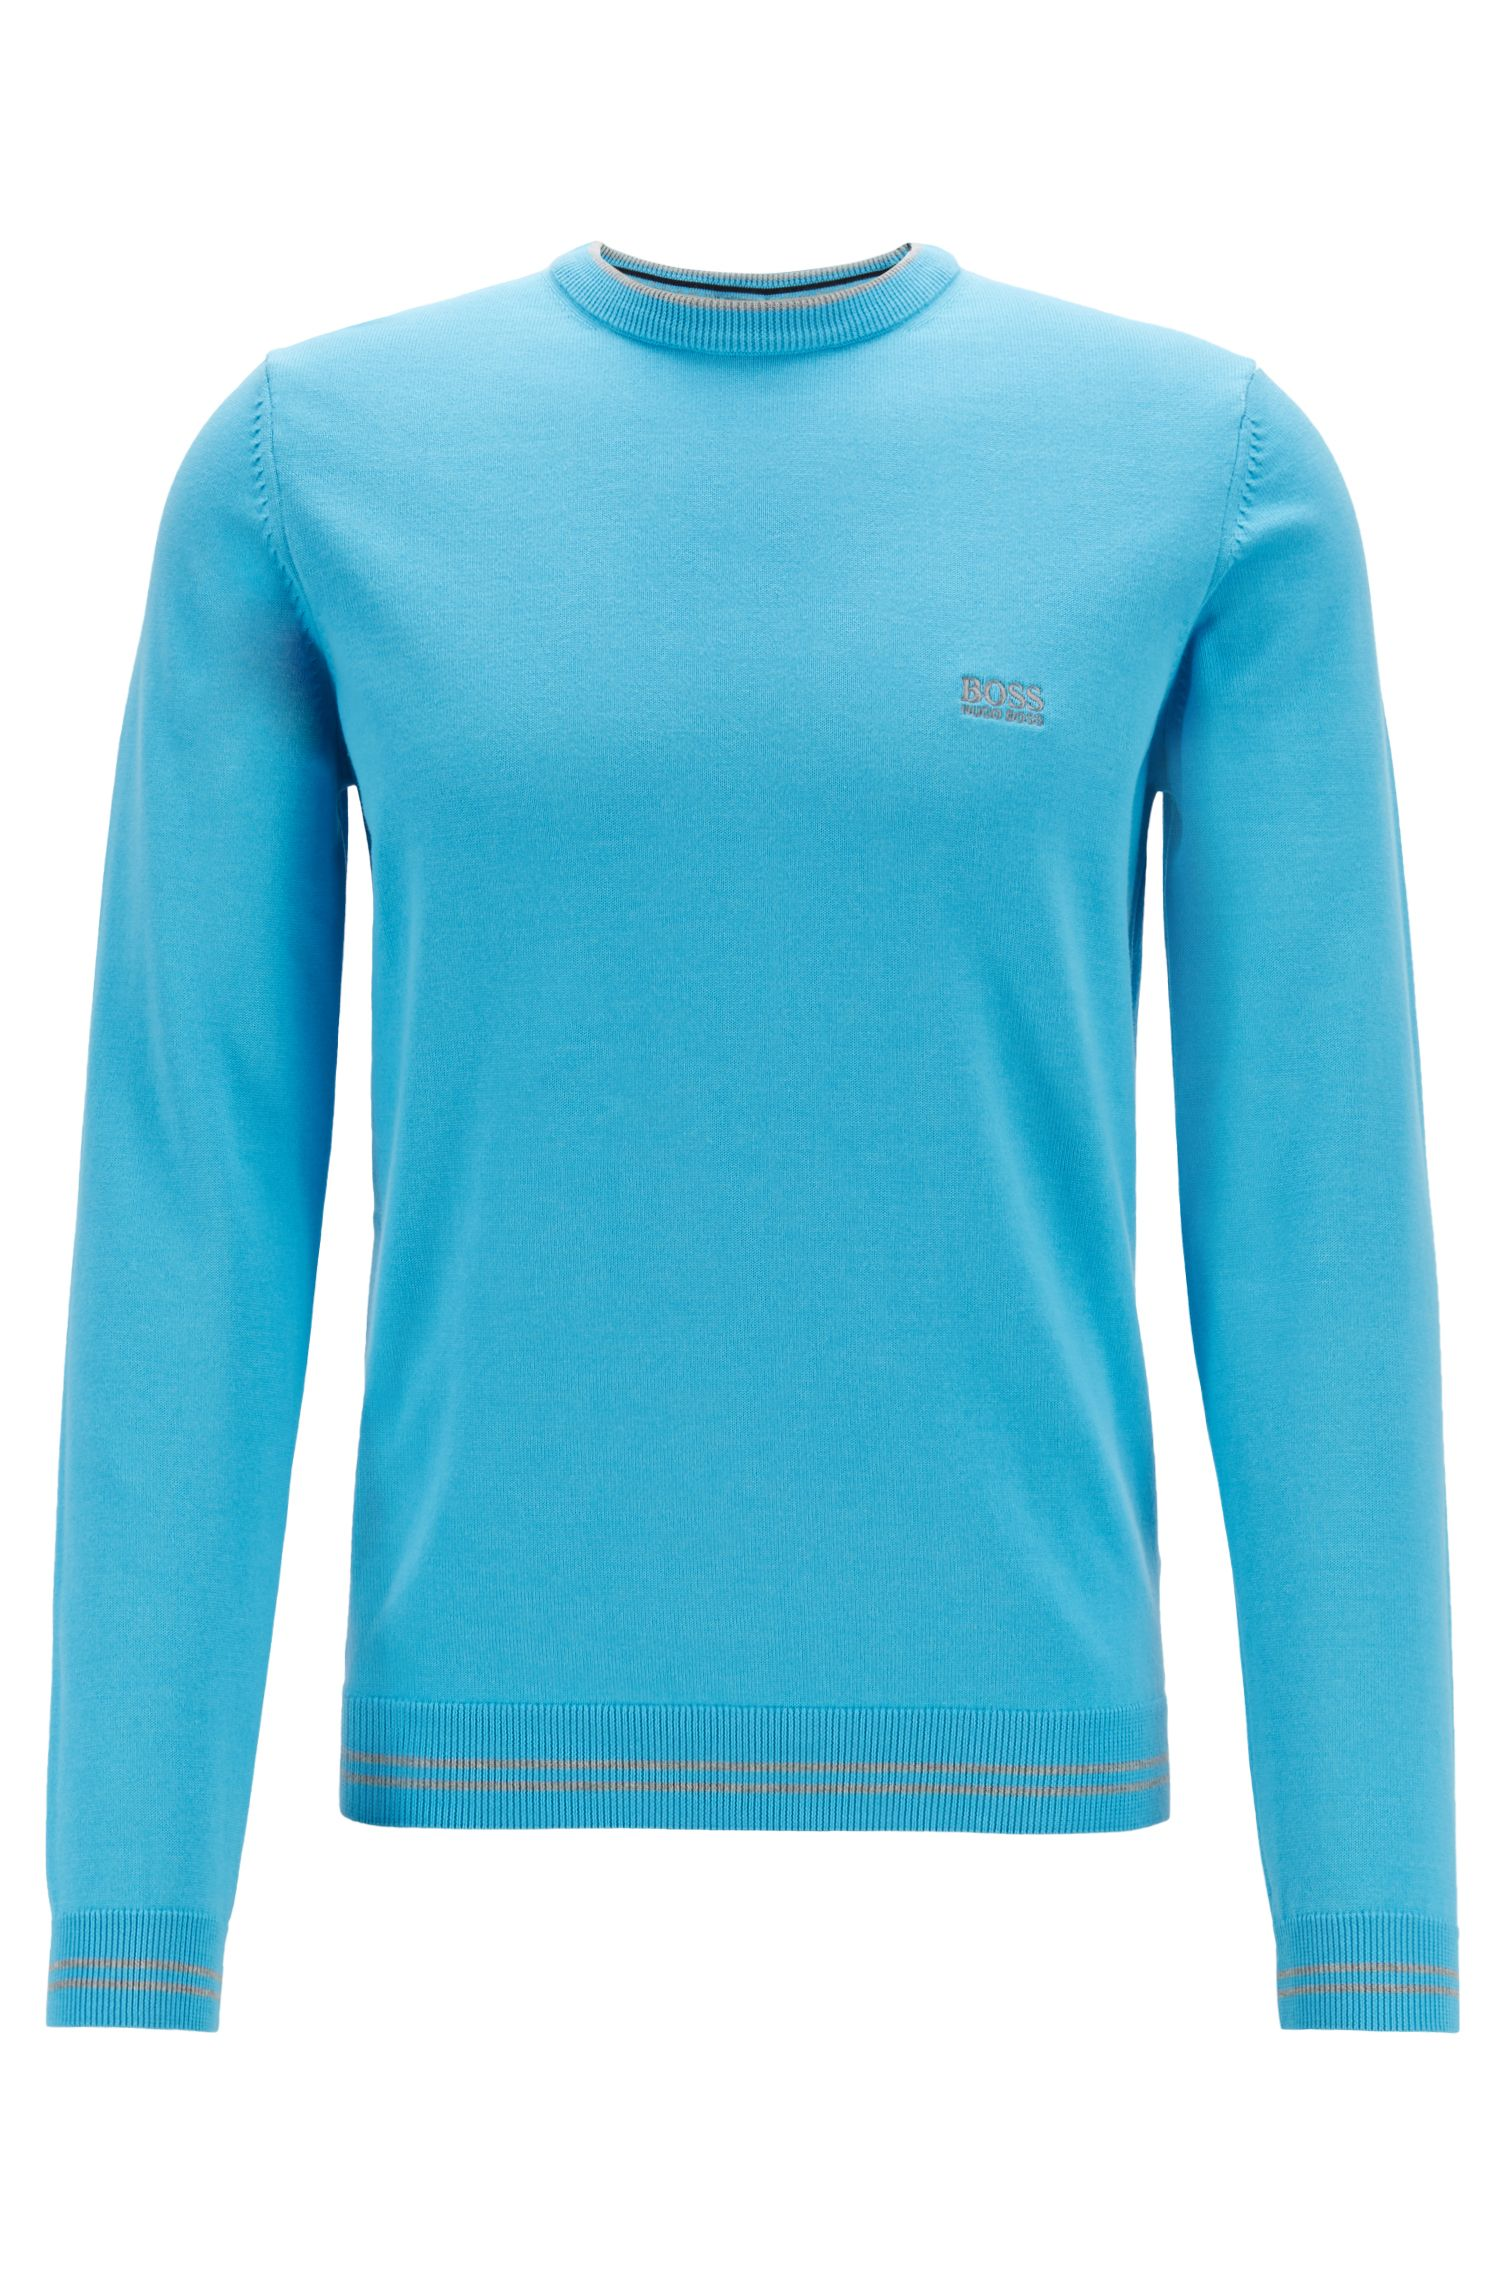 Cotton-blend knitted sweater with tipping stripes, Turquoise